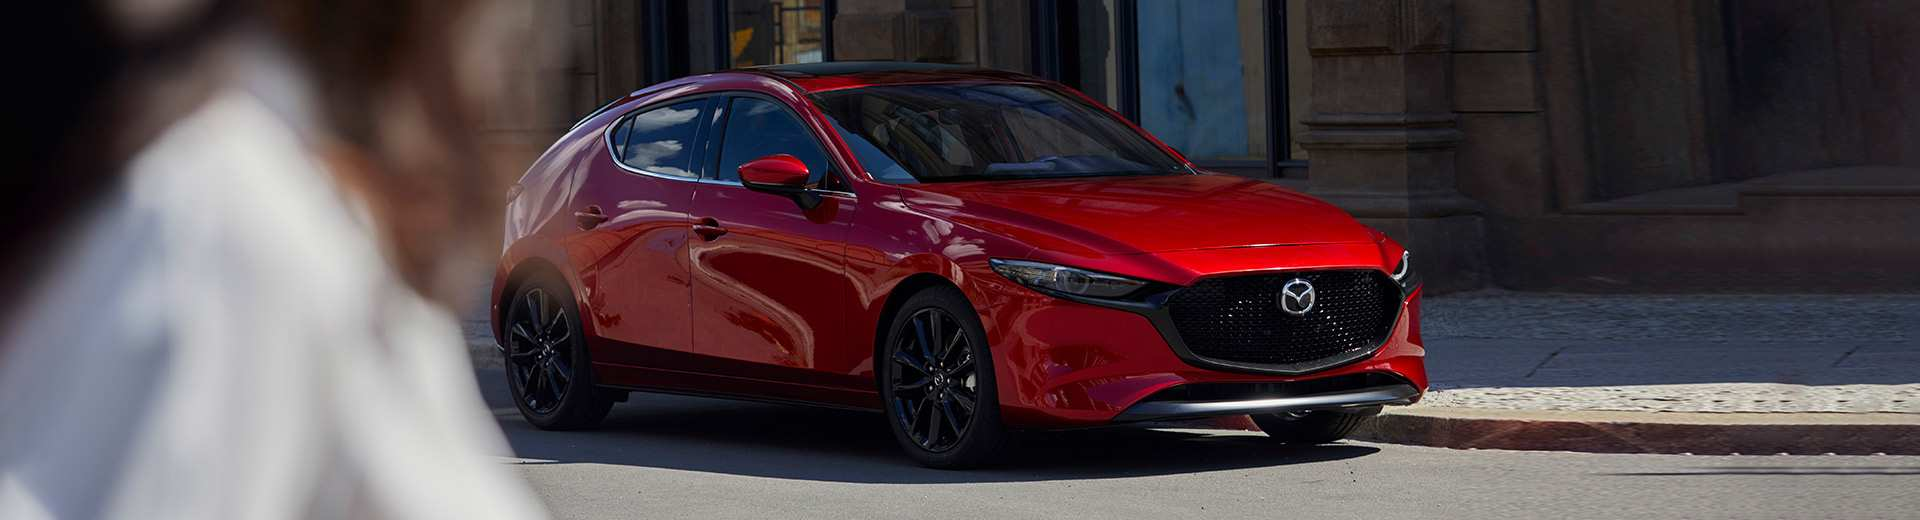 28 The 2020 Mazda 3 Turbo Pictures